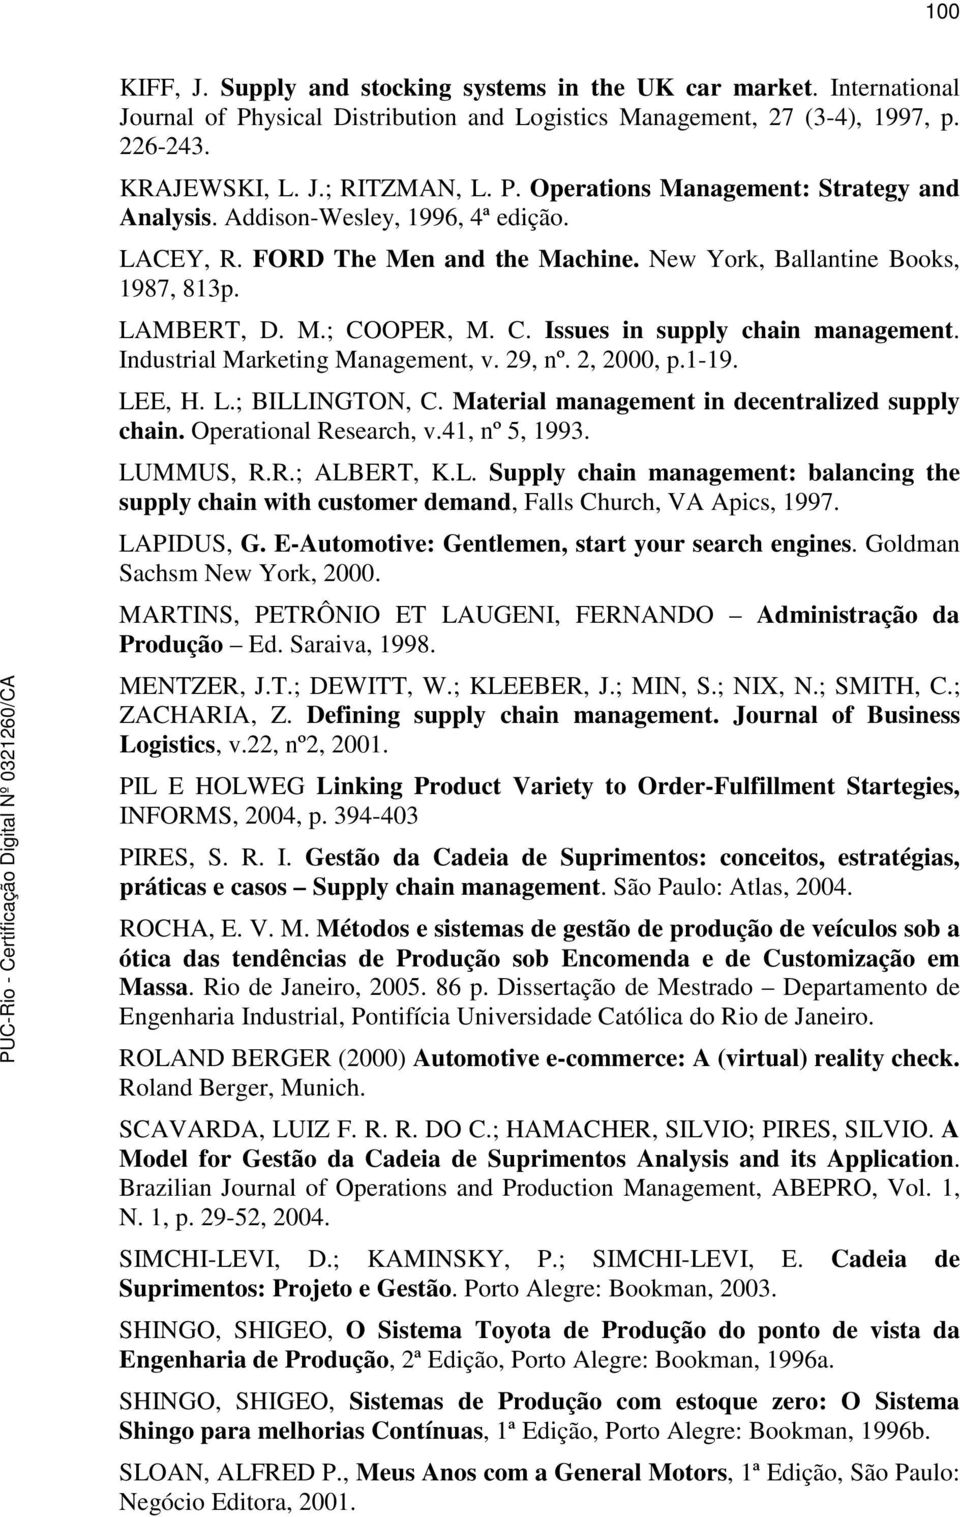 Industrial Marketing Management, v. 29, nº. 2, 2000, p.1-19. LEE, H. L.; BILLINGTON, C. Material management in decentralized supply chain. Operational Research, v.41, nº 5, 1993. LUMMUS, R.R.; ALBERT, K.